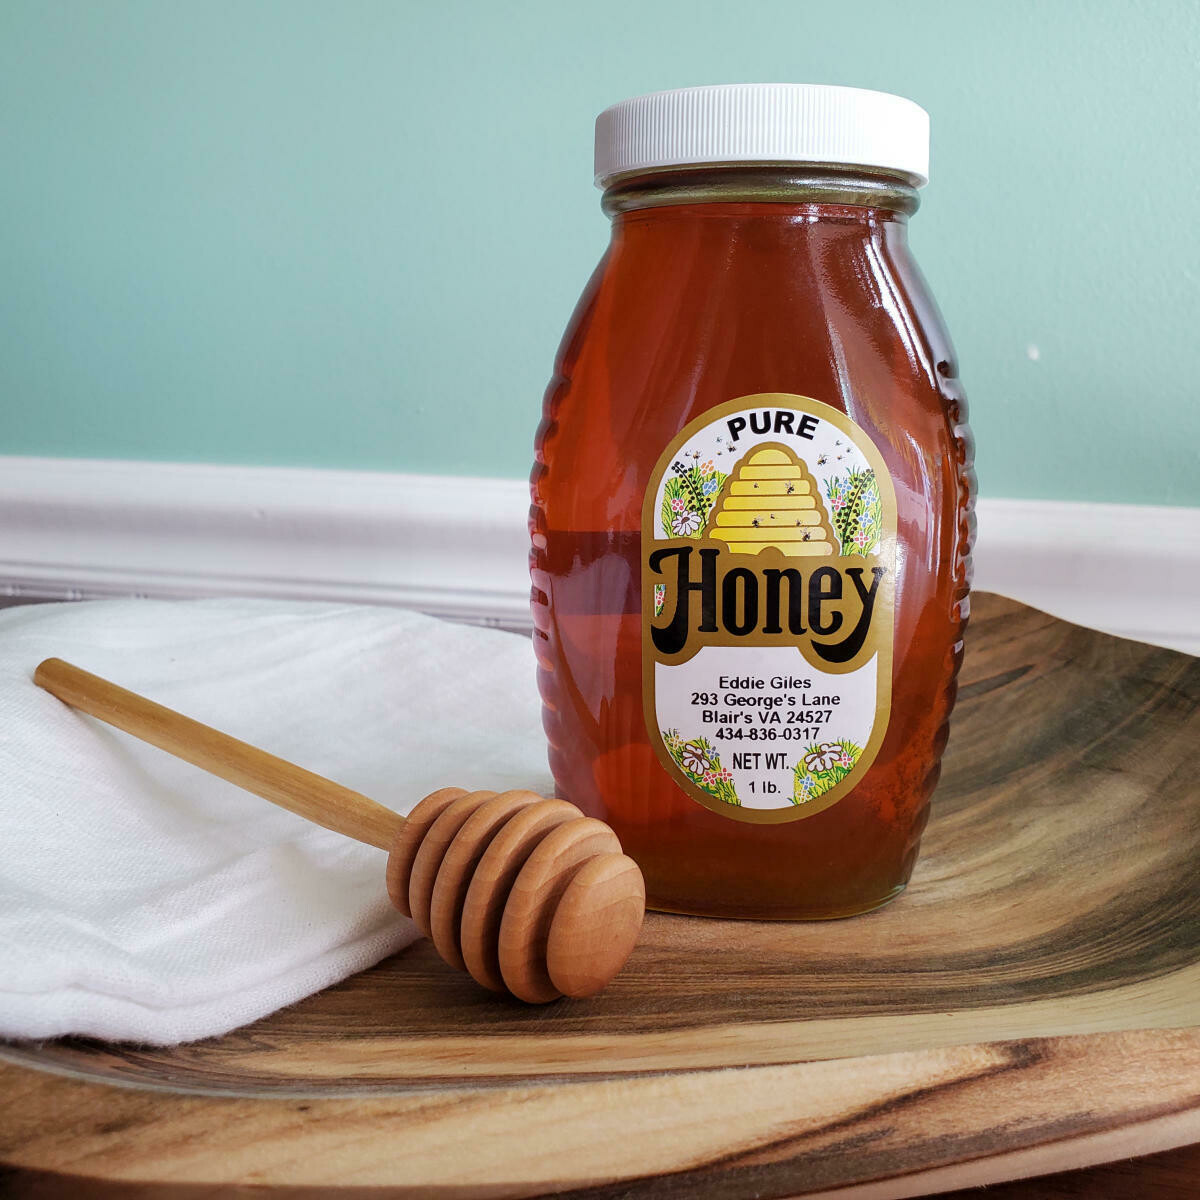 Pure Honey by Eddie Giles